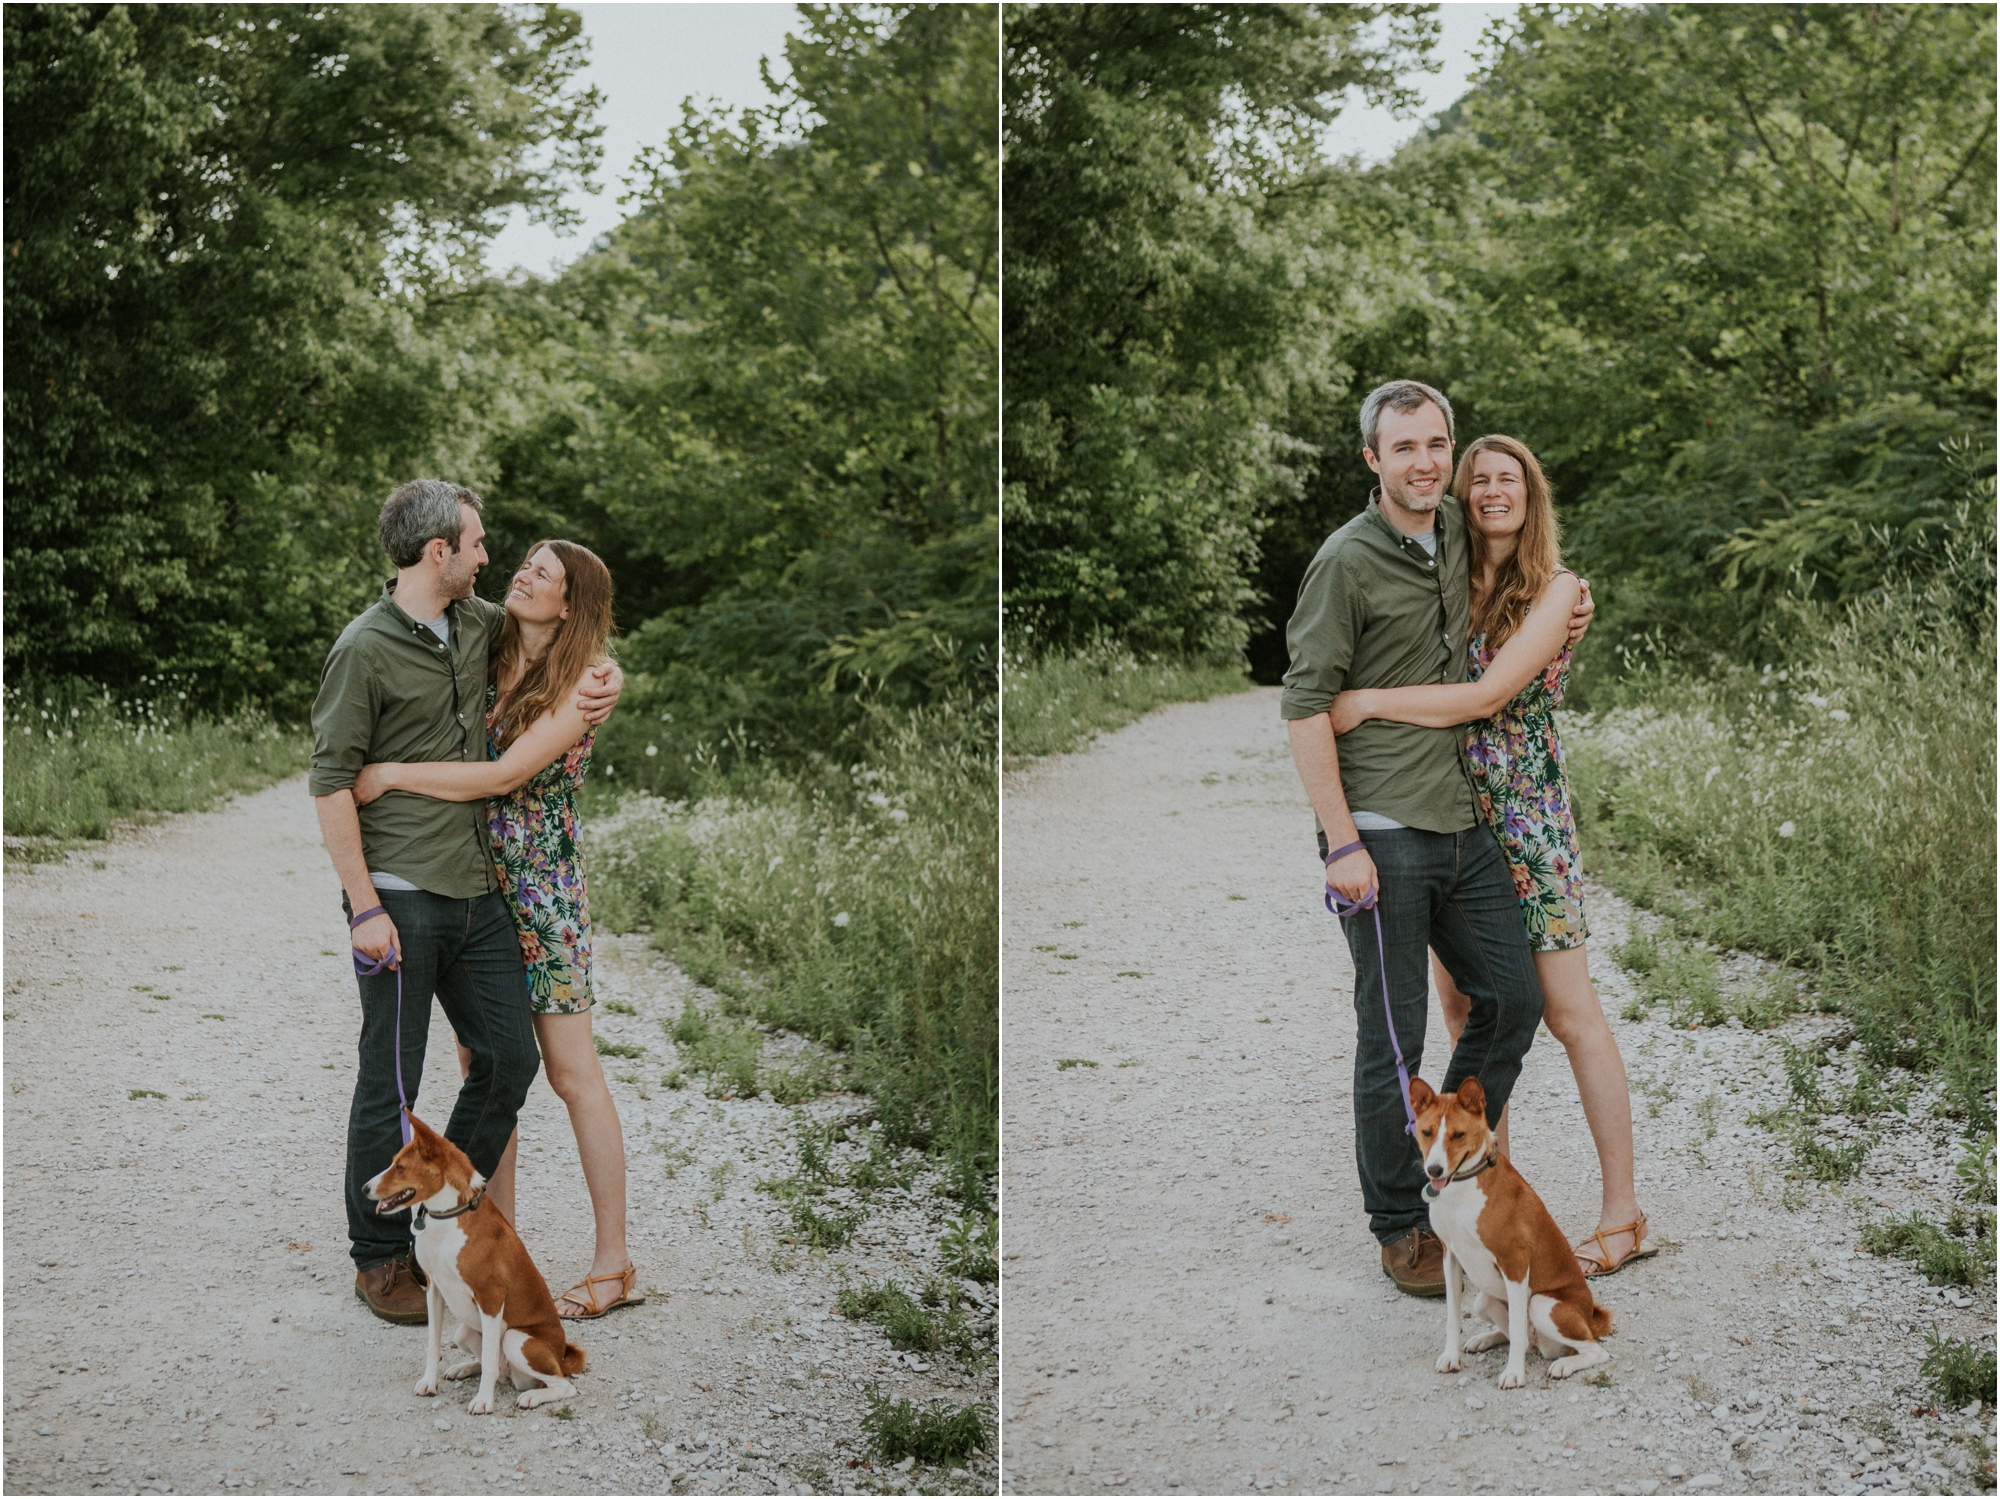 meads-quarry-ijams-nature-center-knoxville-tennessee-engagement-session-summer-northeast-tn-adventurous-outdoors-lake-katy-sergent_0027.jpg